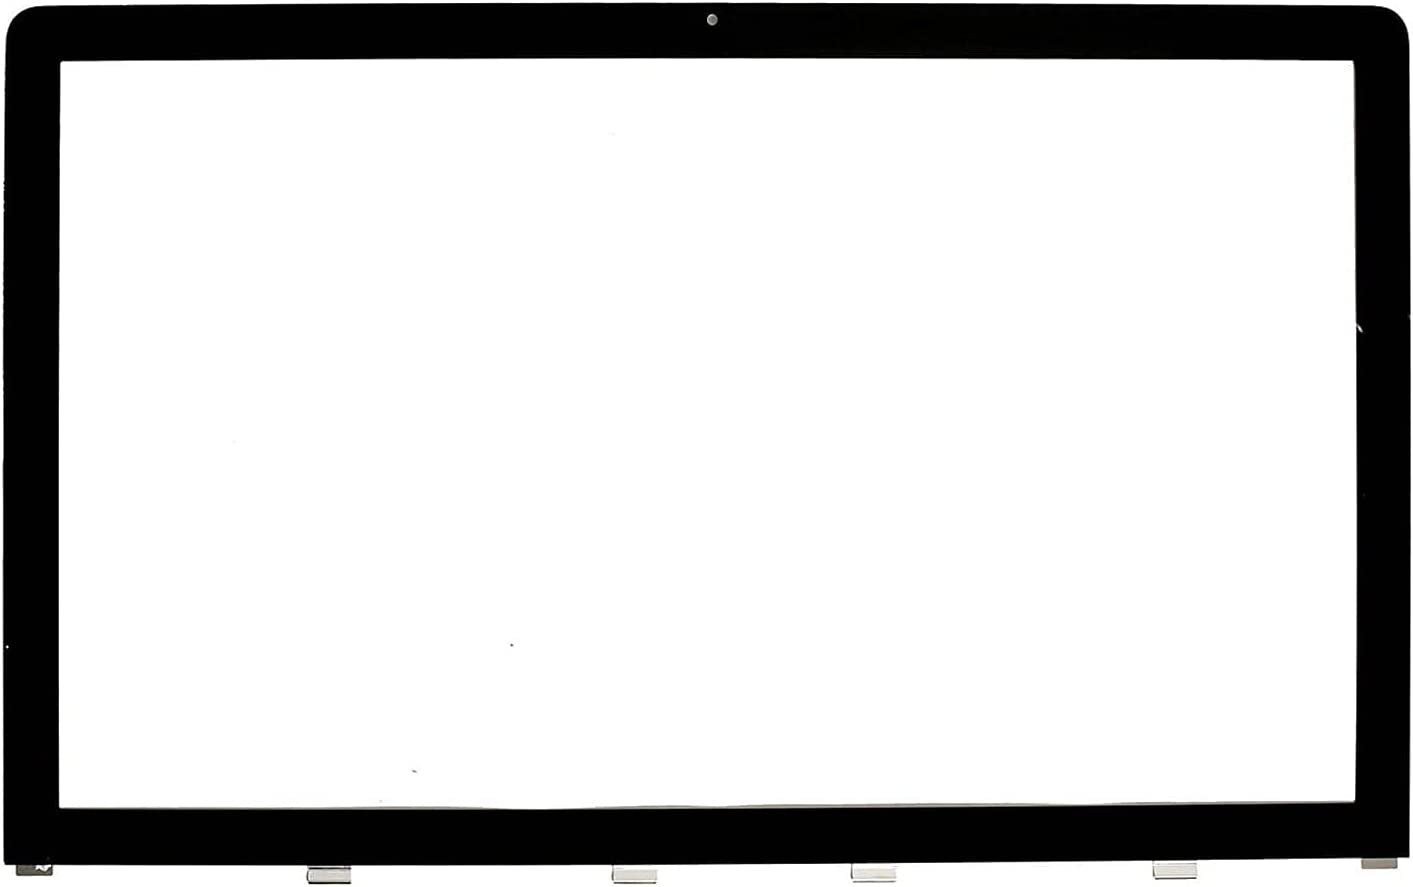 LCD Panel Glass Bezel Replacement for iMac 27 Inch A1312 Year 2009 2010 2011